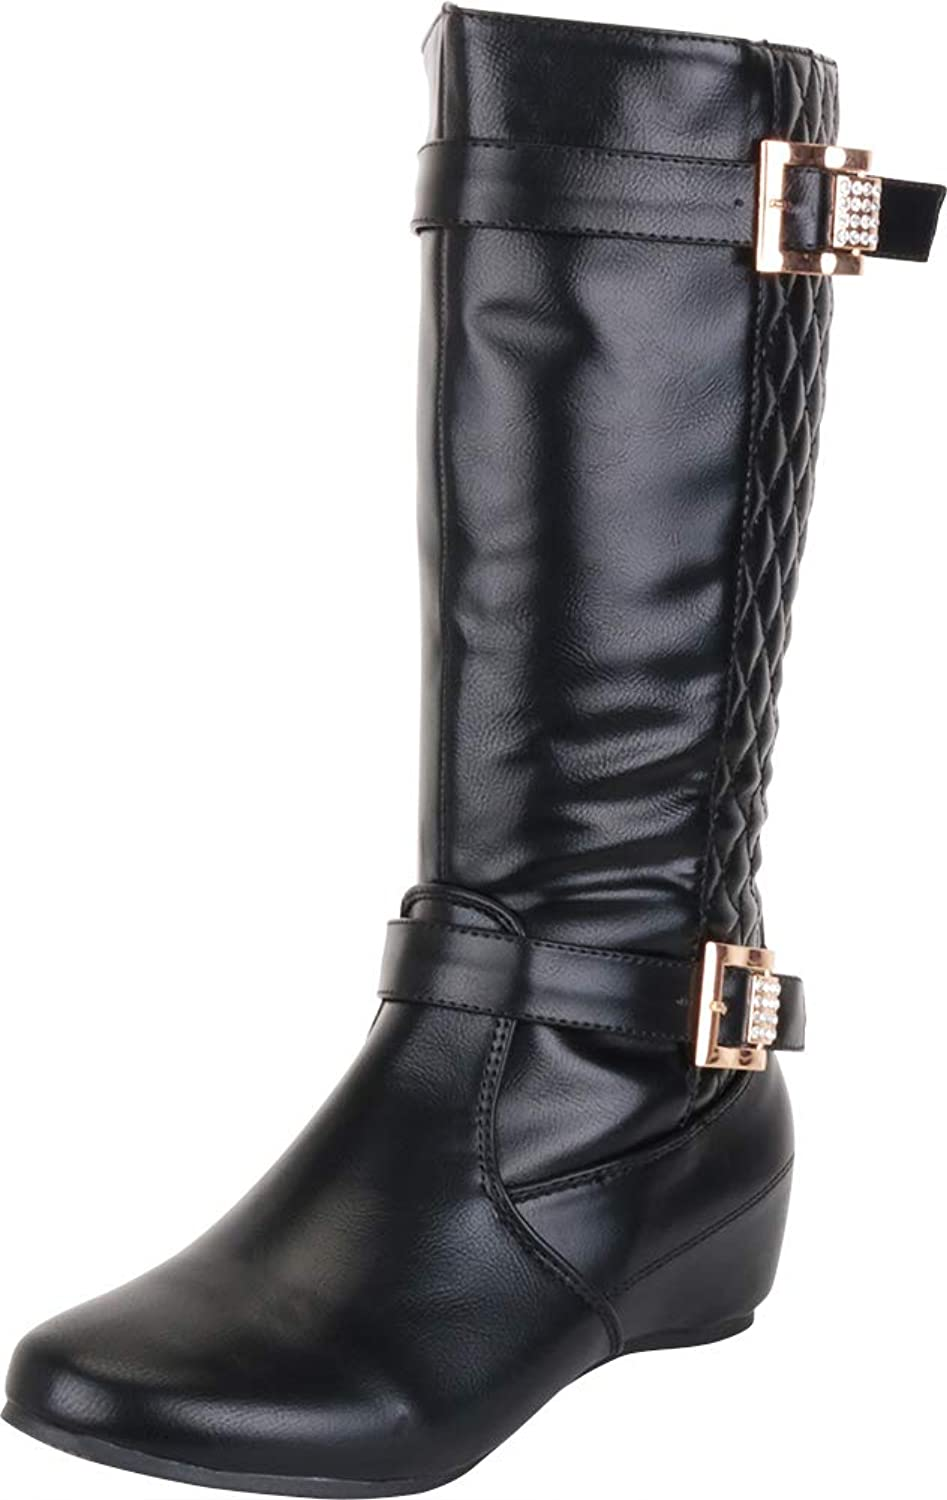 Cambridge Select Women's Quilted Crystal Rhinestone Buckle Hidden Wedge Mid-Calf Riding Boot